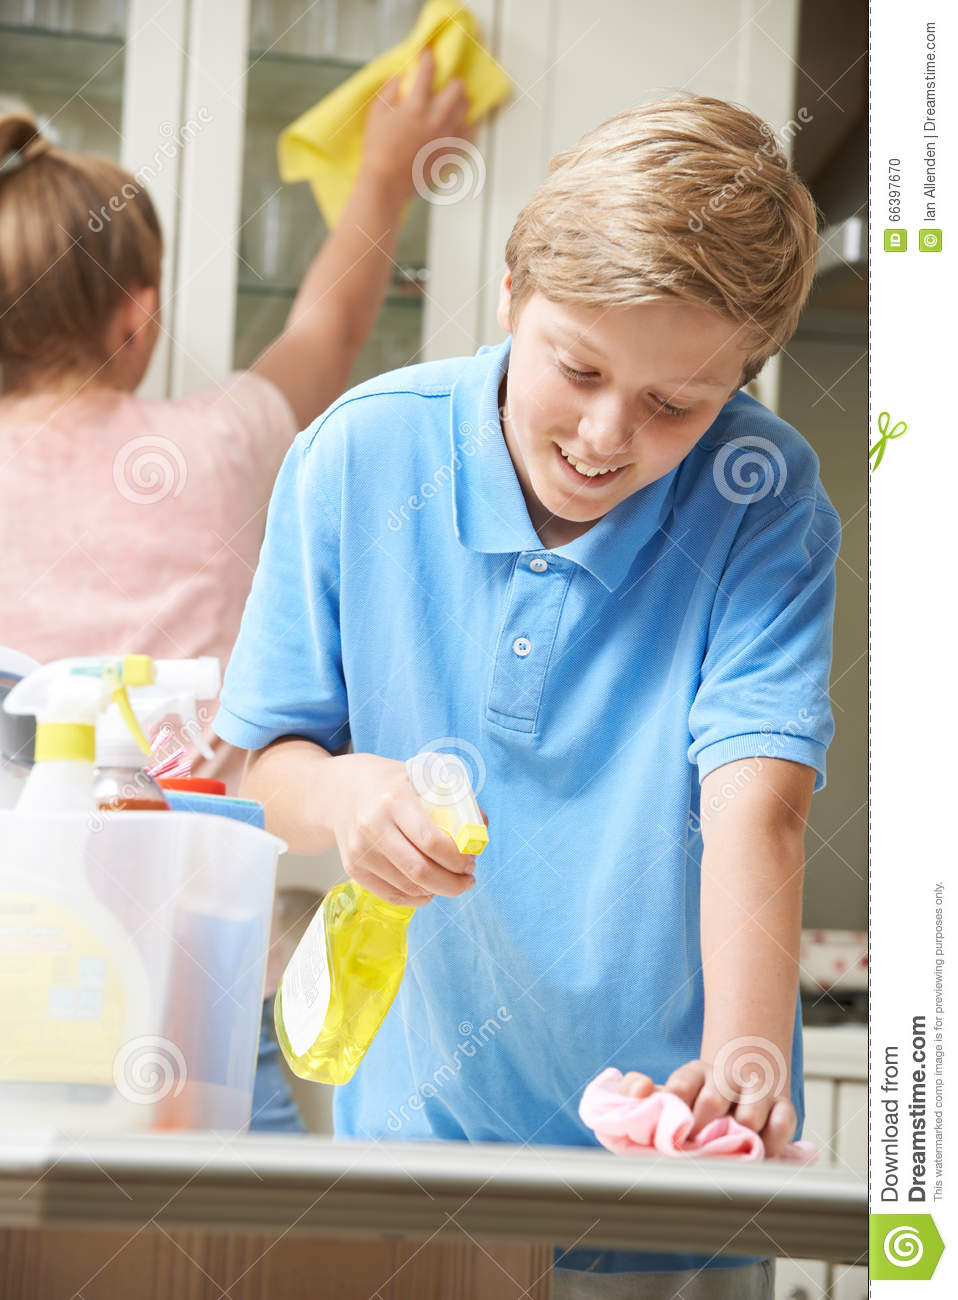 children cleaning - photo #18